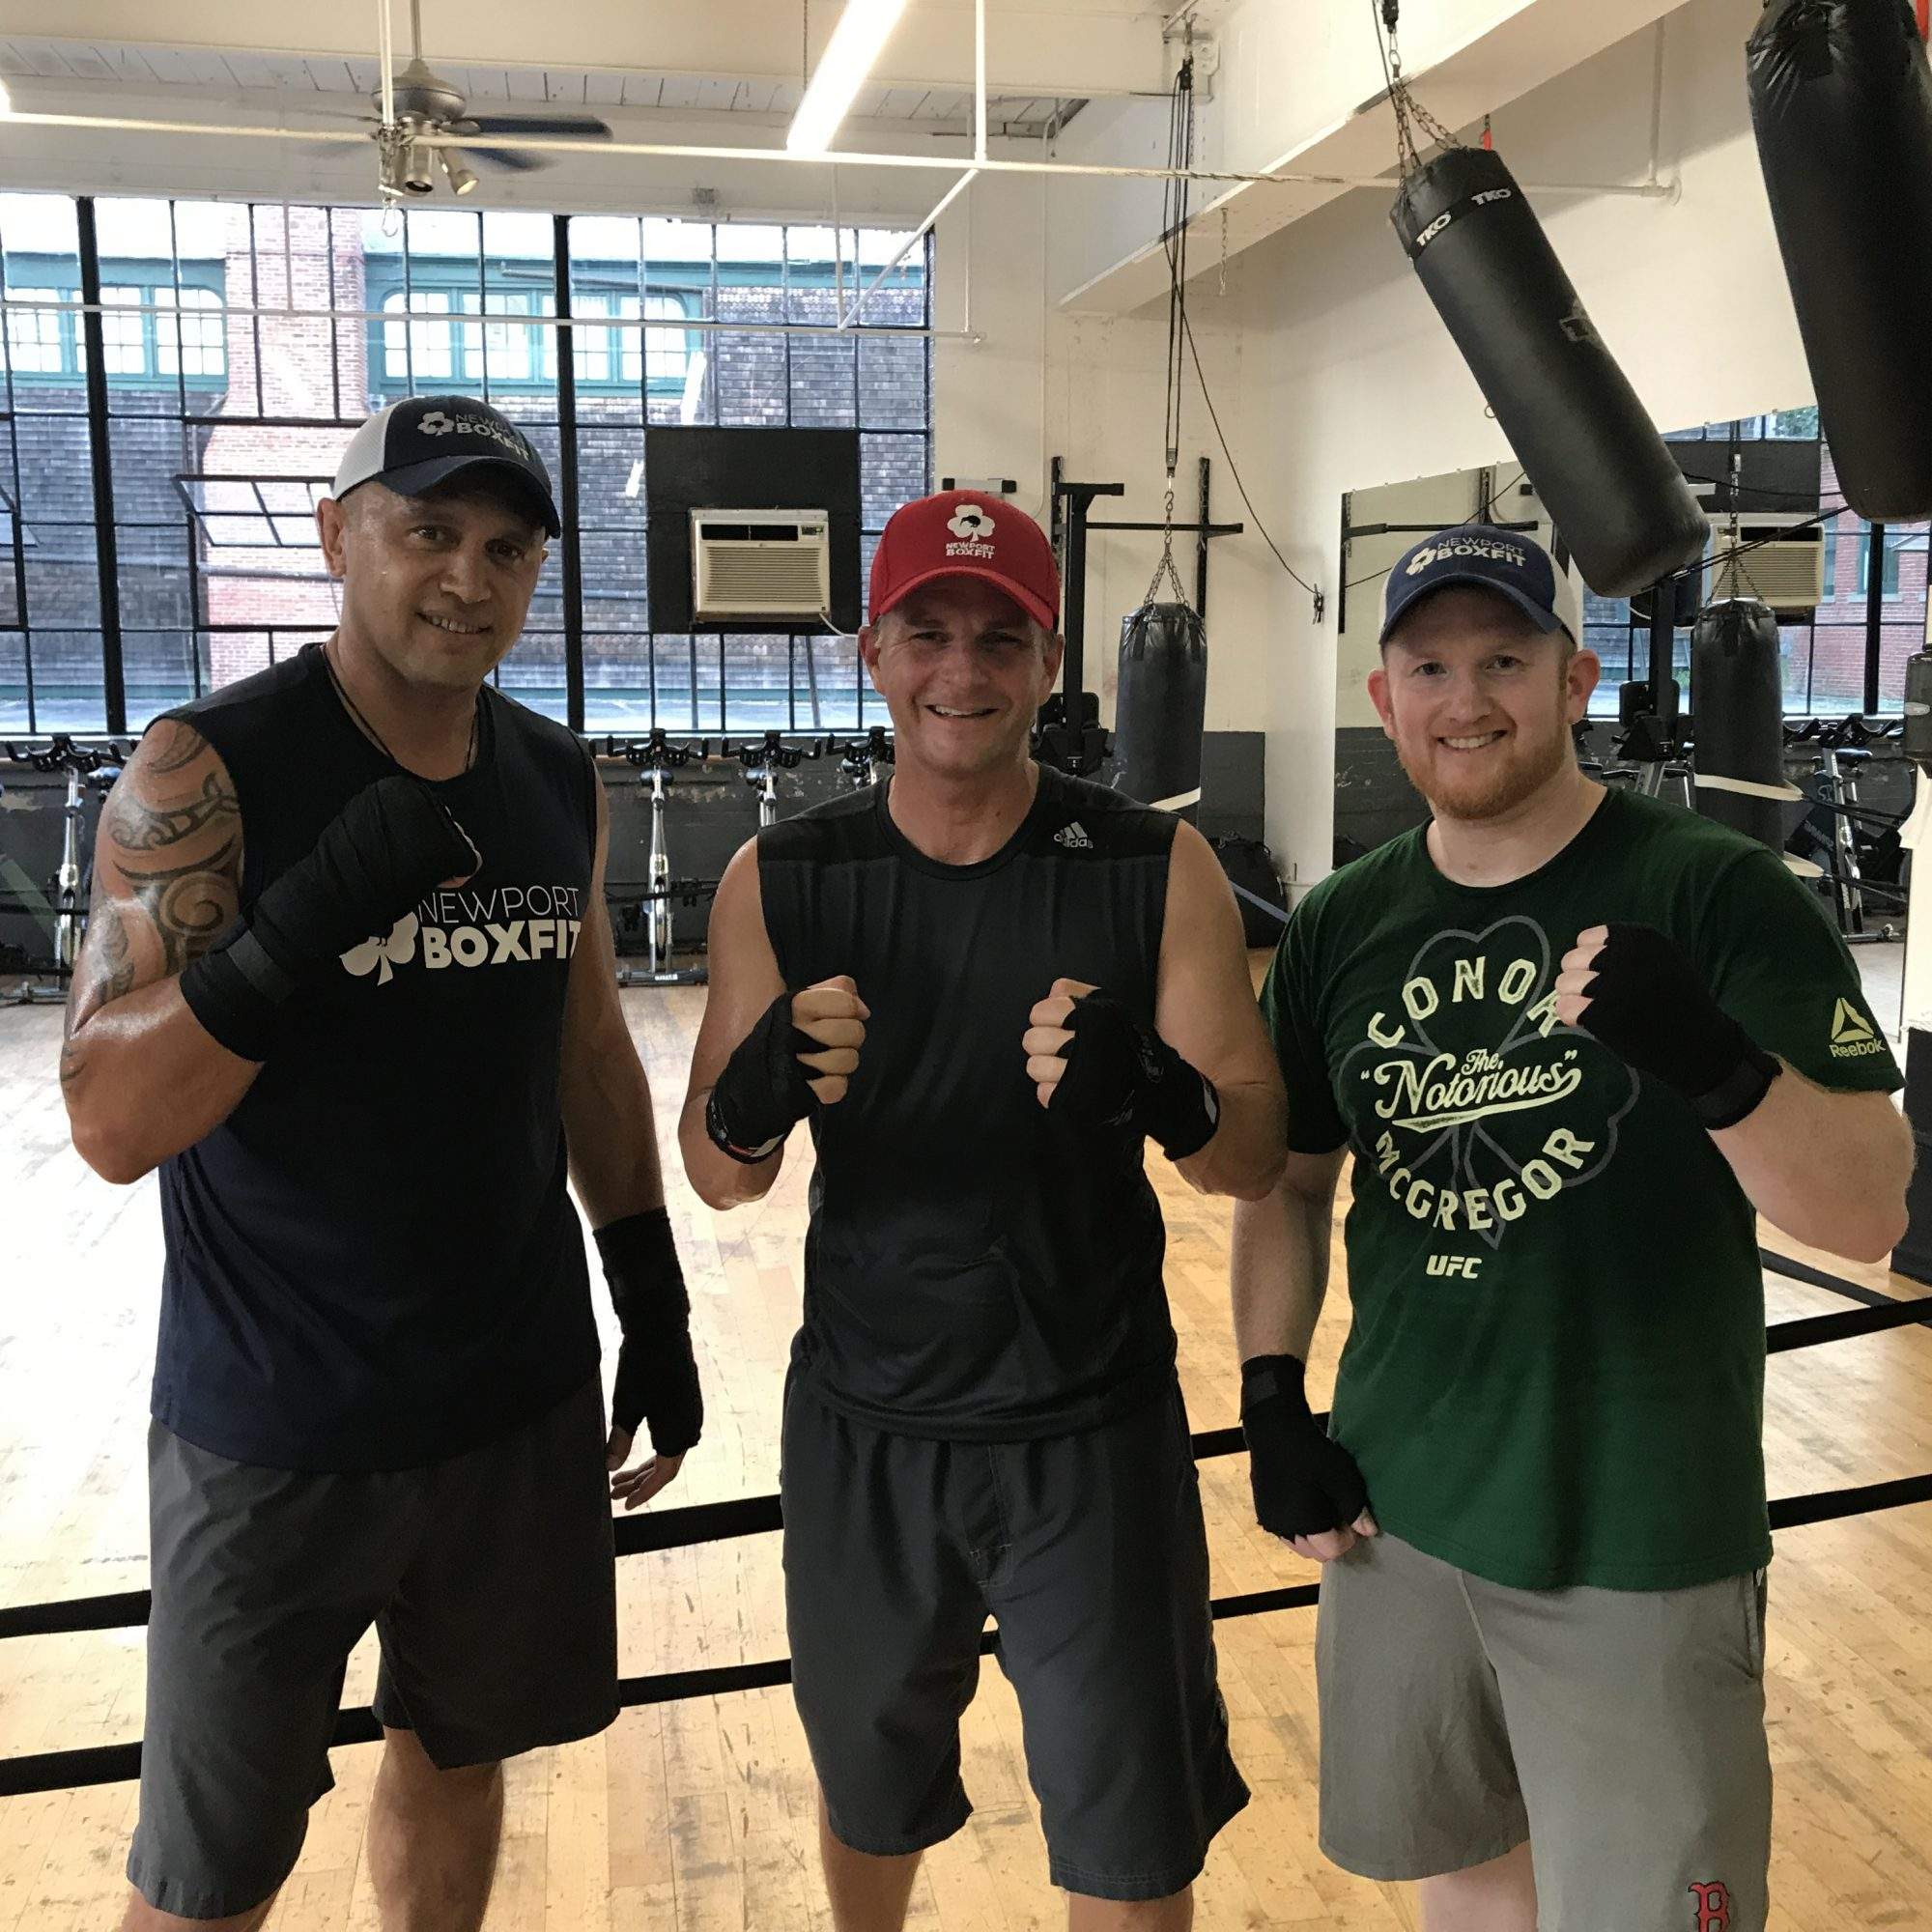 Meet Jesse Macrae of Newport Boxfit in Newport - Boston